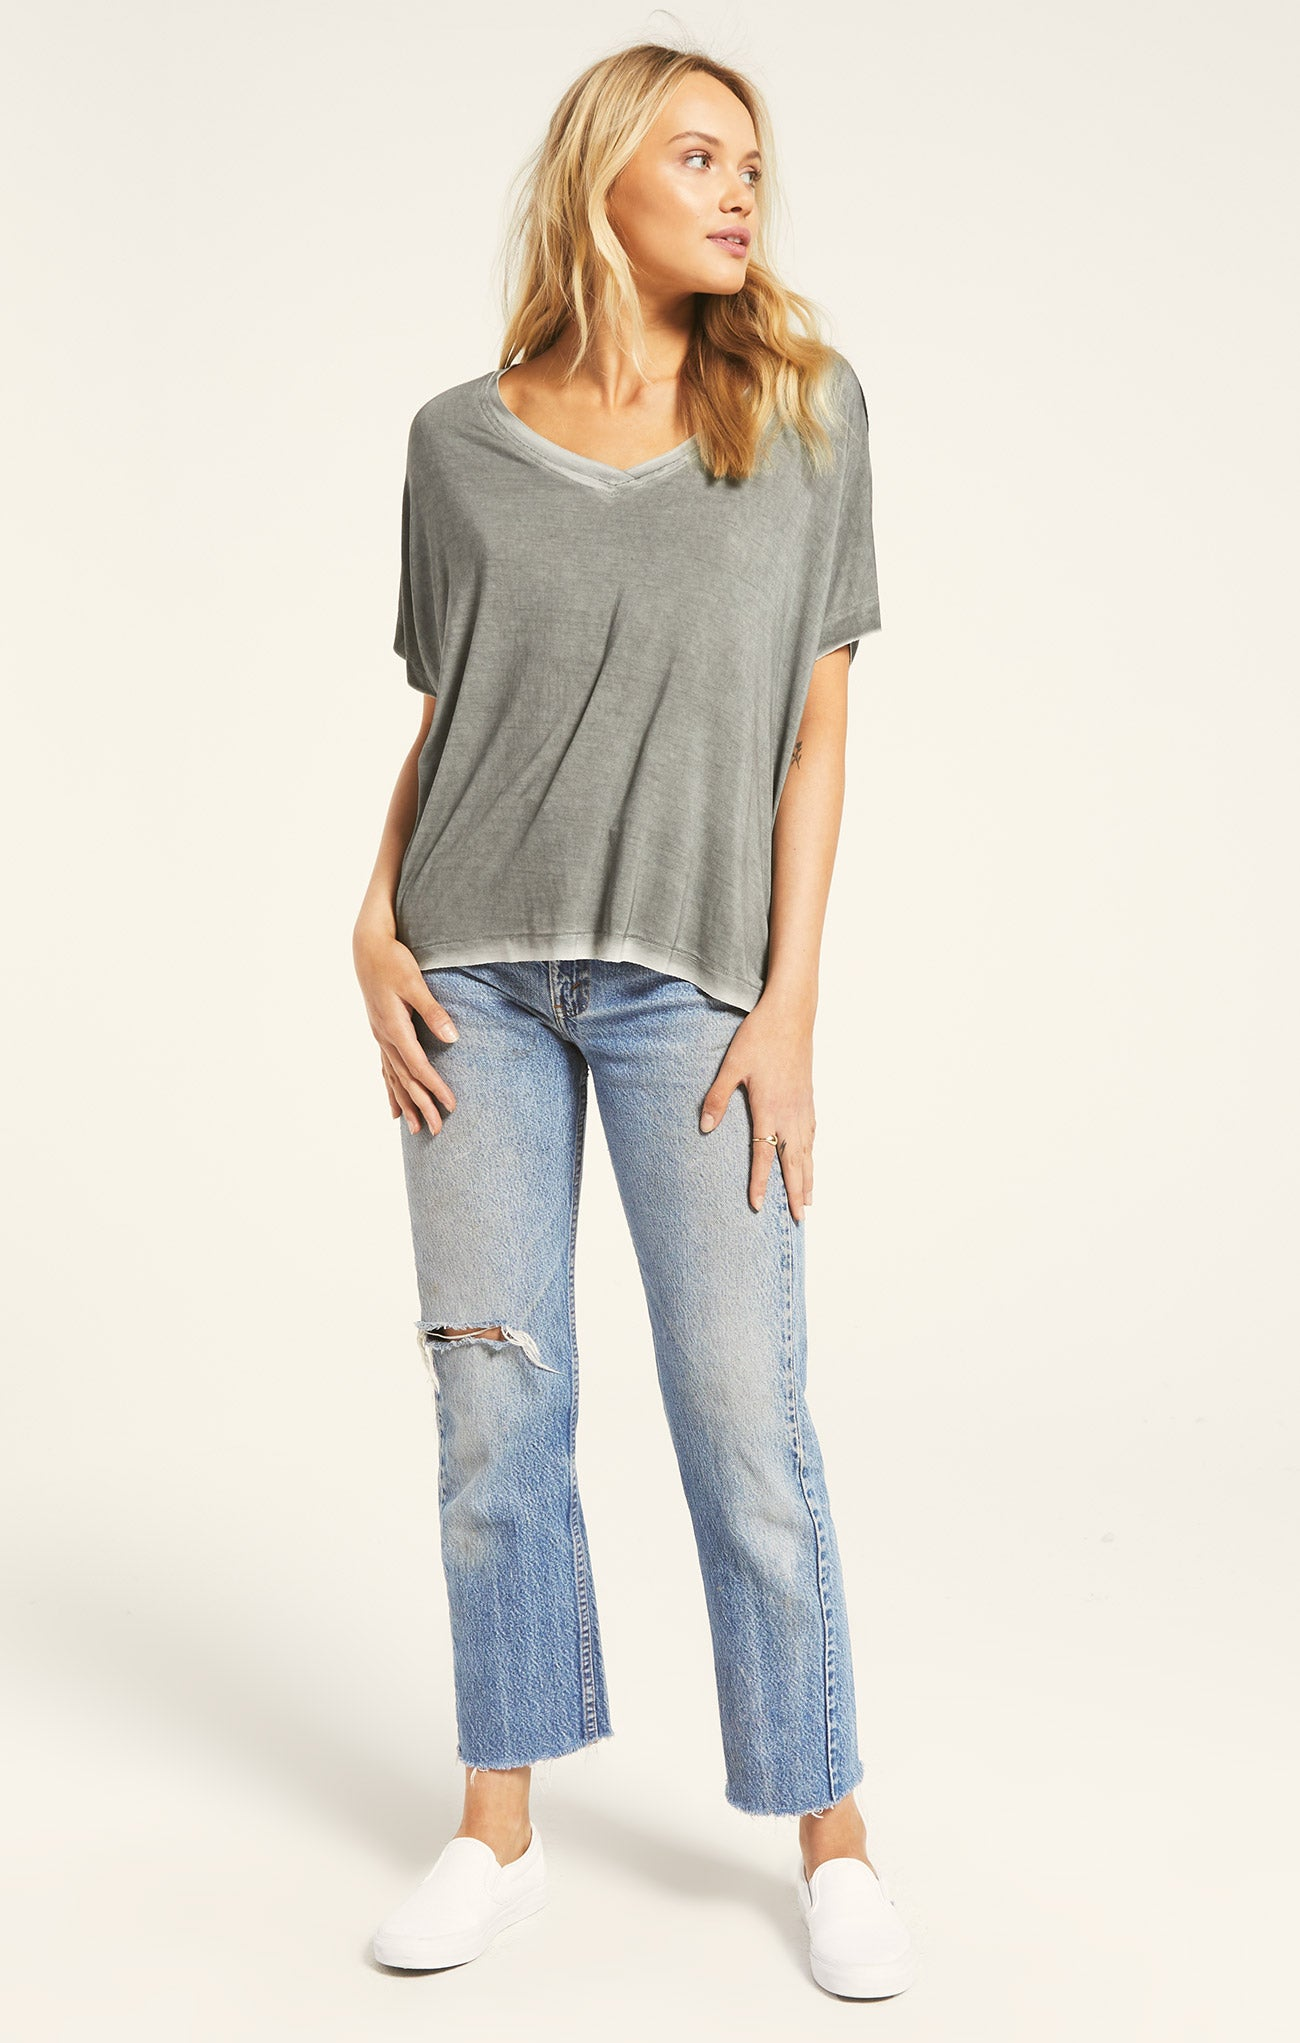 Tops Mischa Sleek V-Neck Tee Ash Green